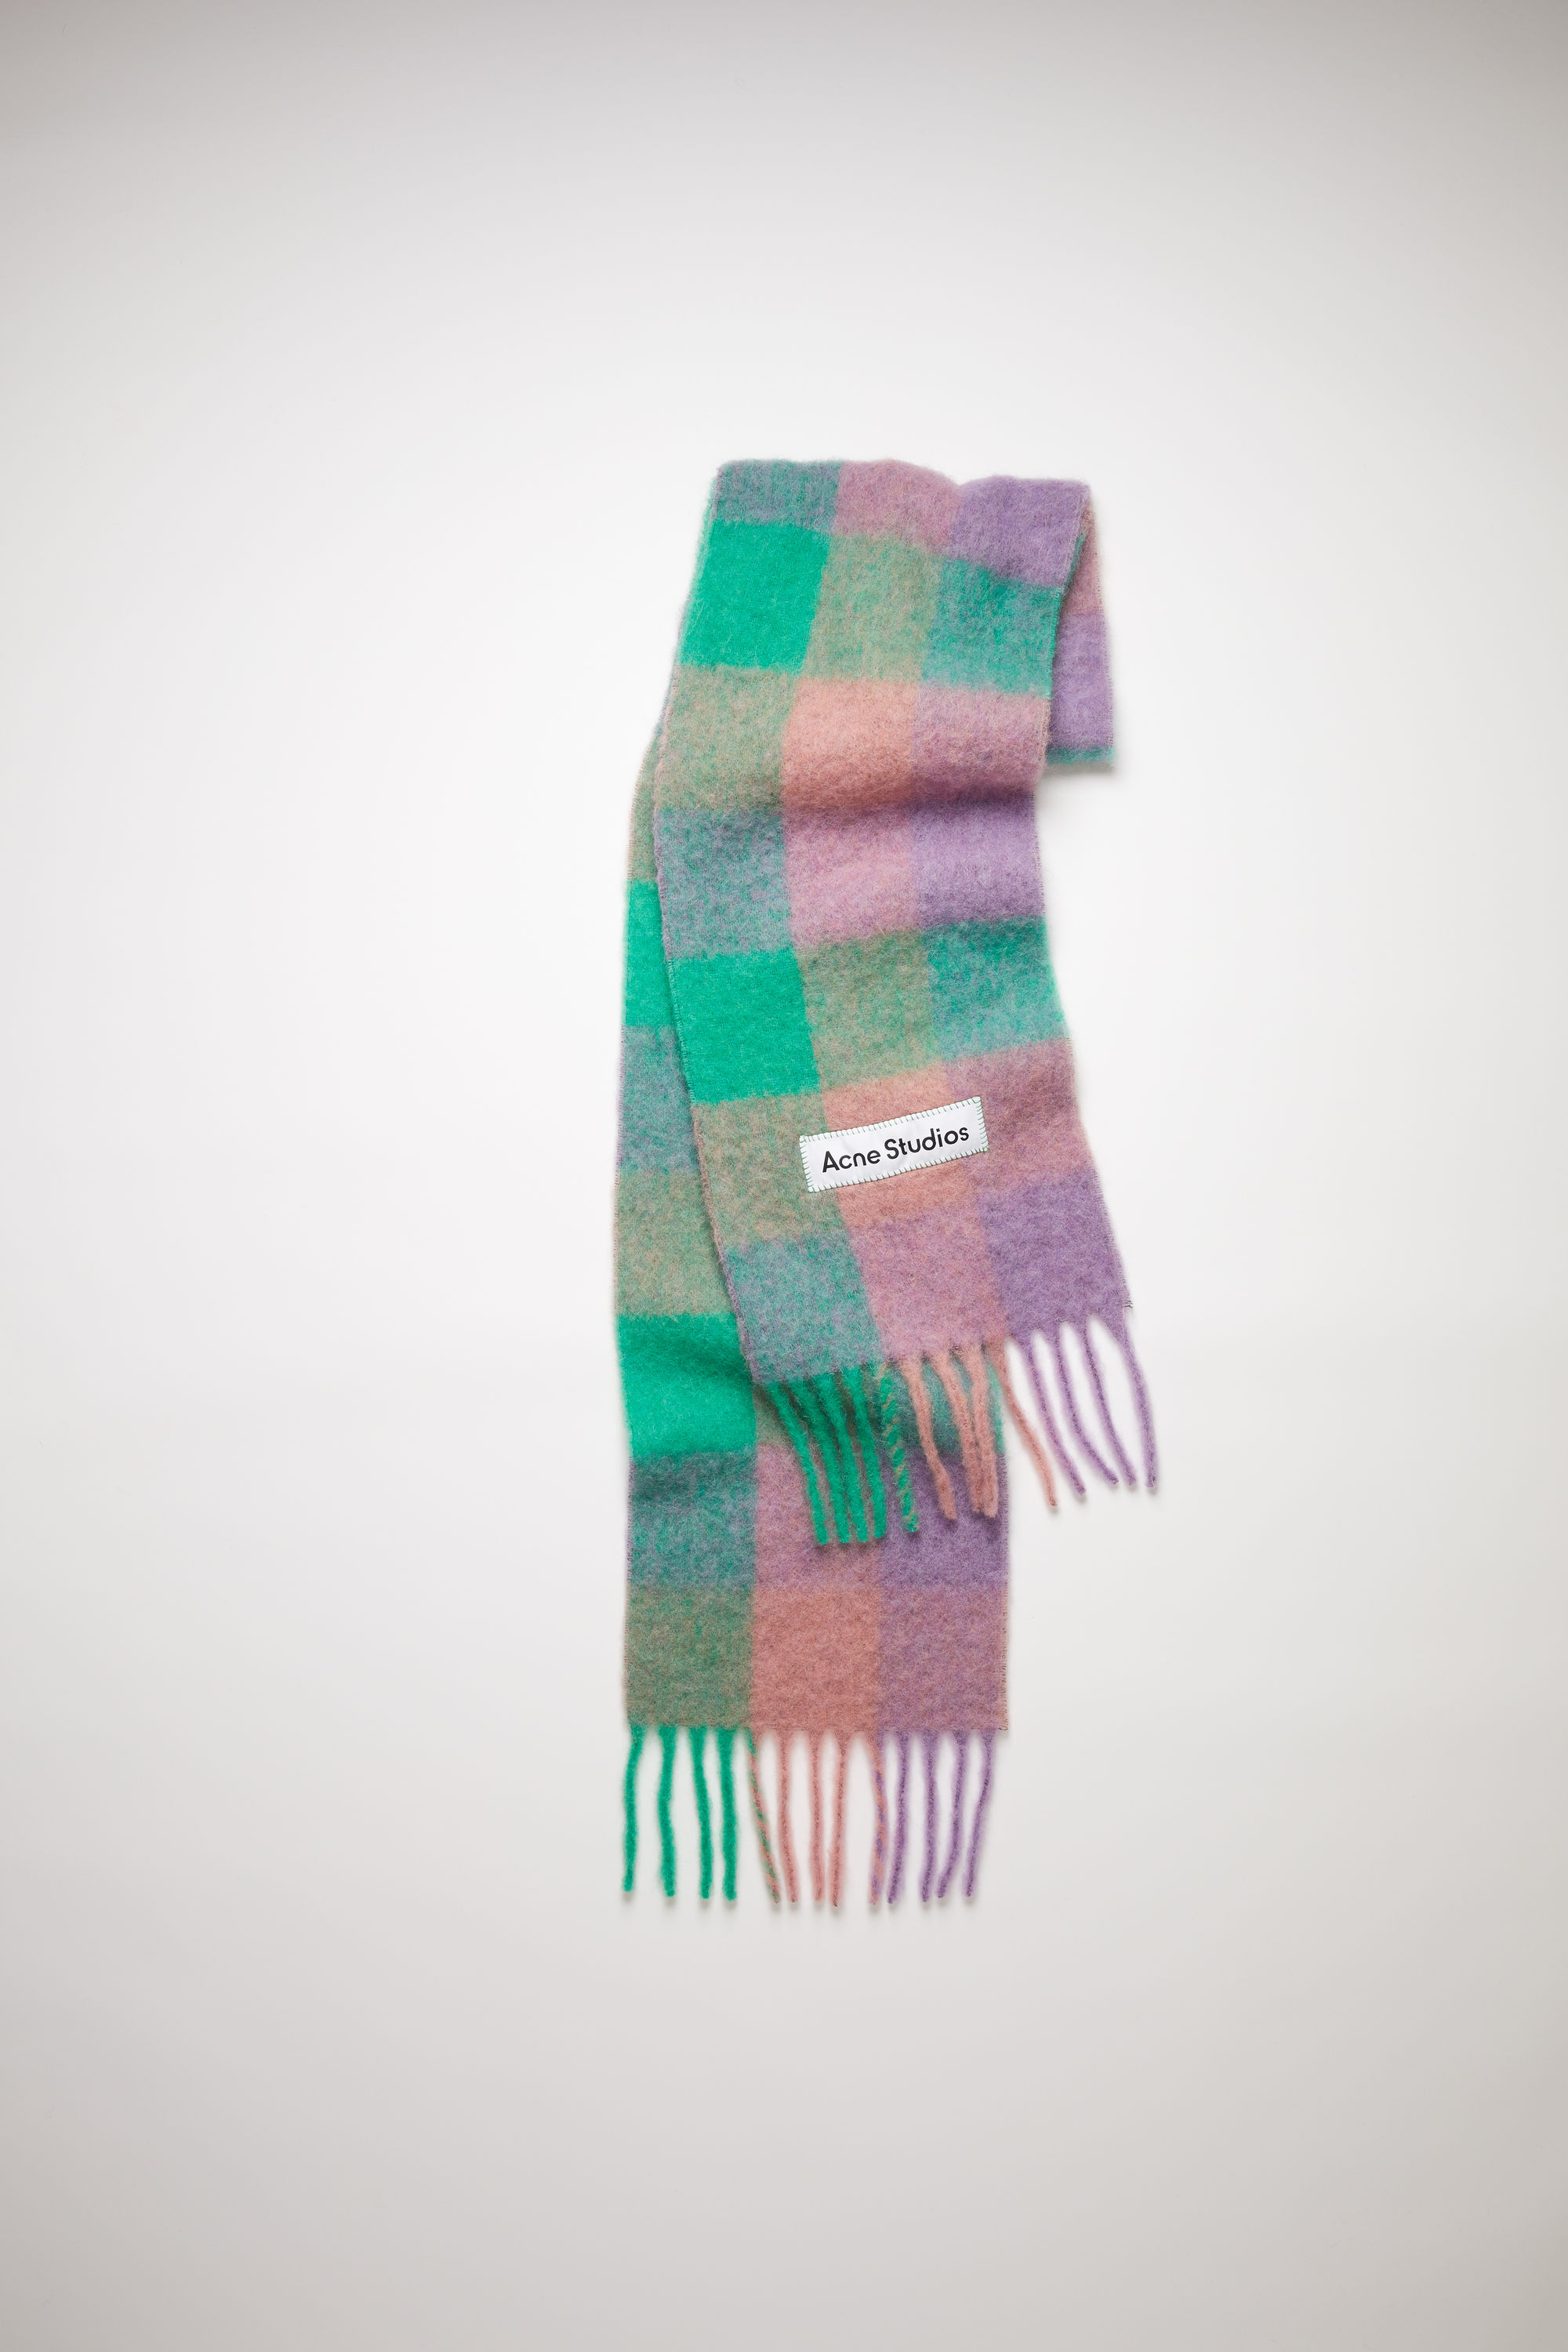 Acne Studios lilac purple/green/pink large scale check scarf is made of an alpaca blend with fringed ends. 001